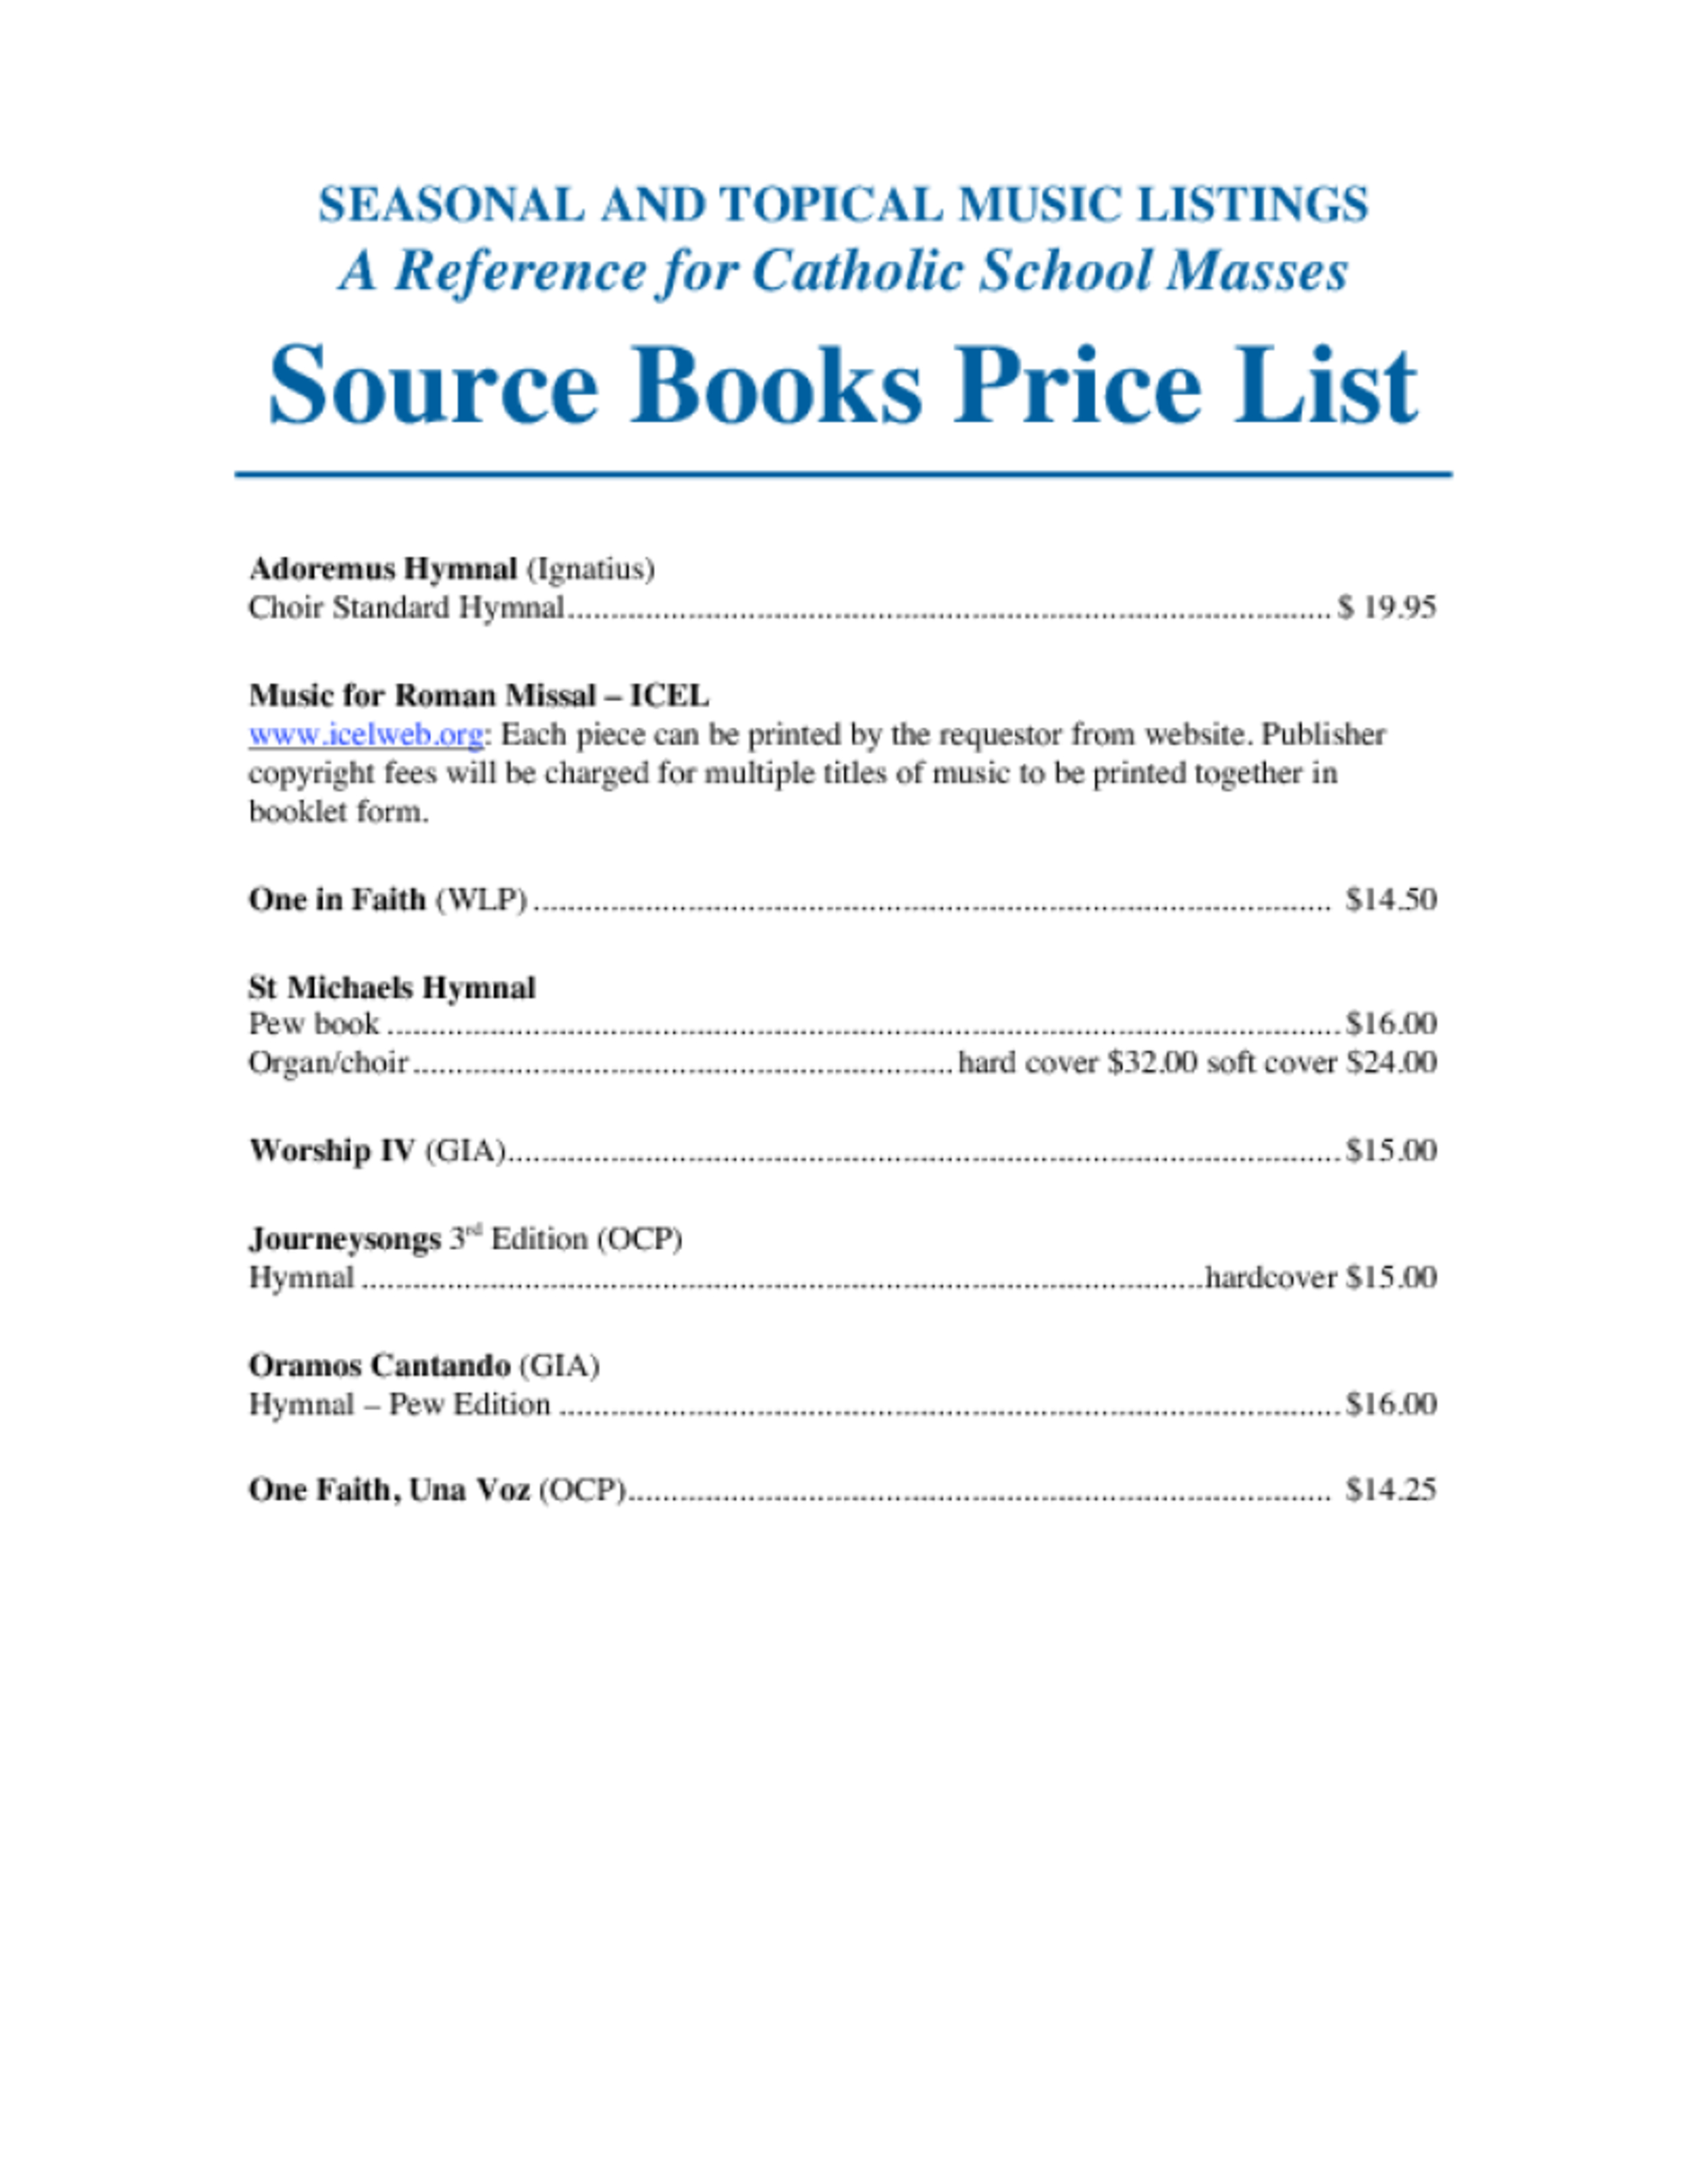 Source Book Price List | American Federation Pueri Cantores